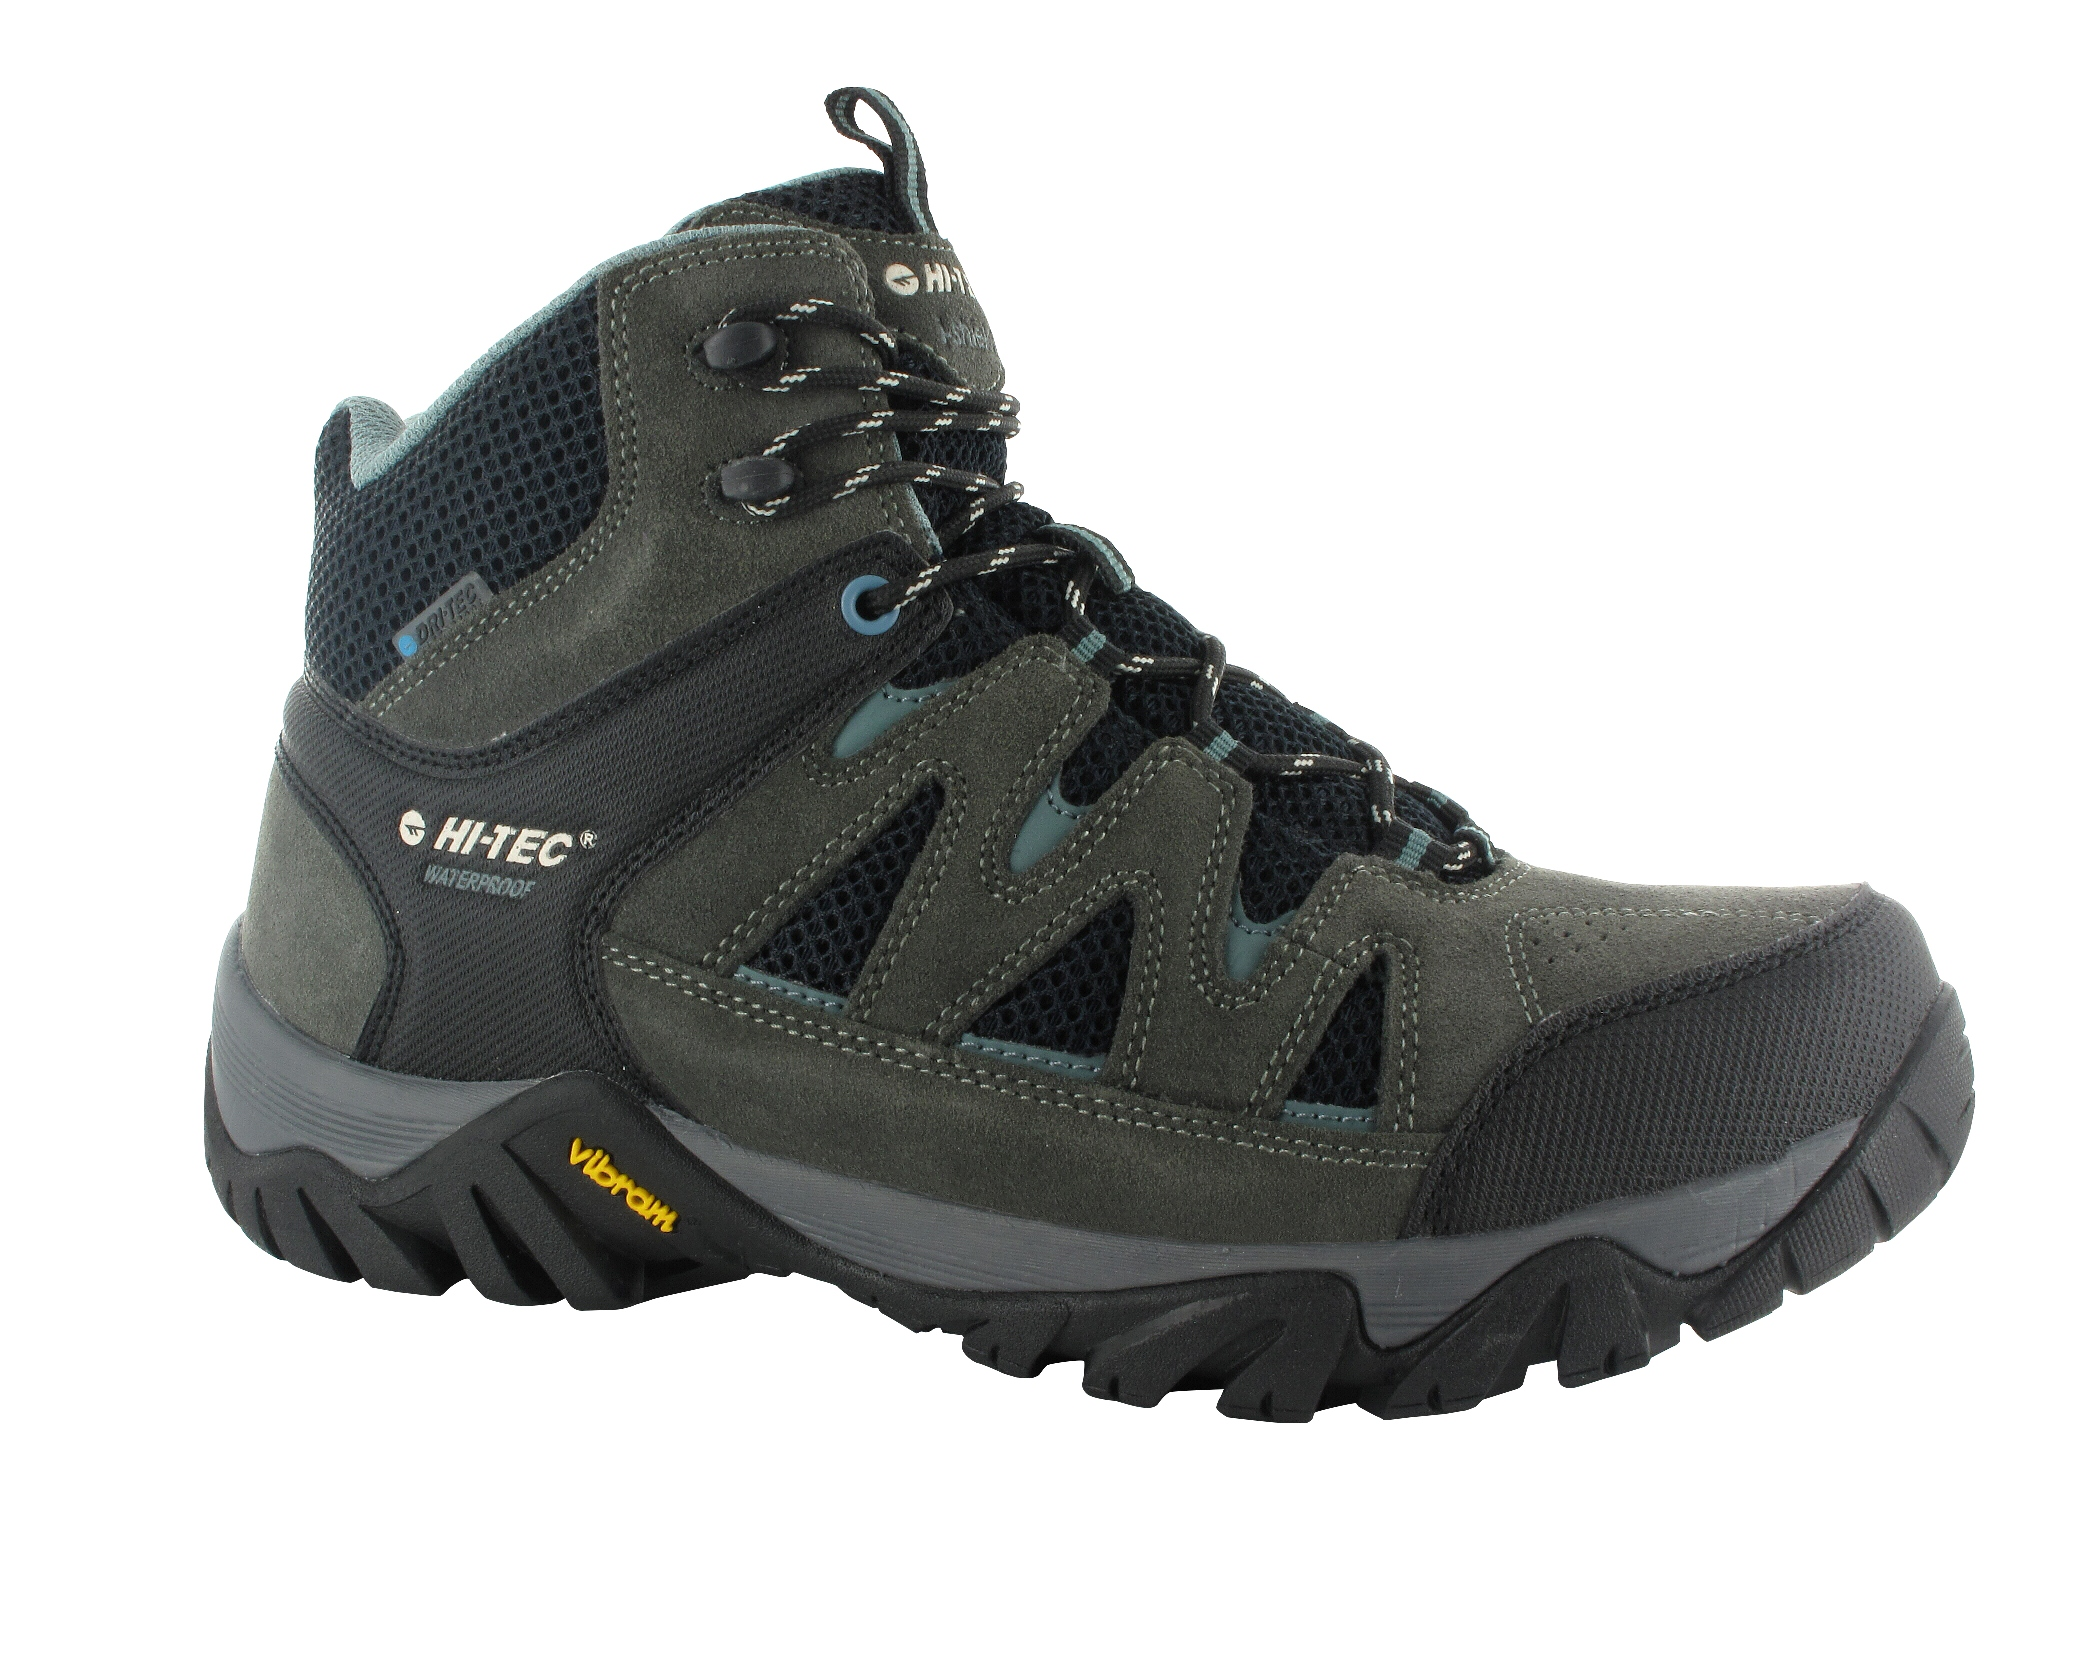 Hi-Tec Men's Sonorous Mid II I-Shield Waterproof Gull Grey/Black/Goblin Hiking Boot PartNumber: 3ZZVA90911712P MfgPartNumber: 54209